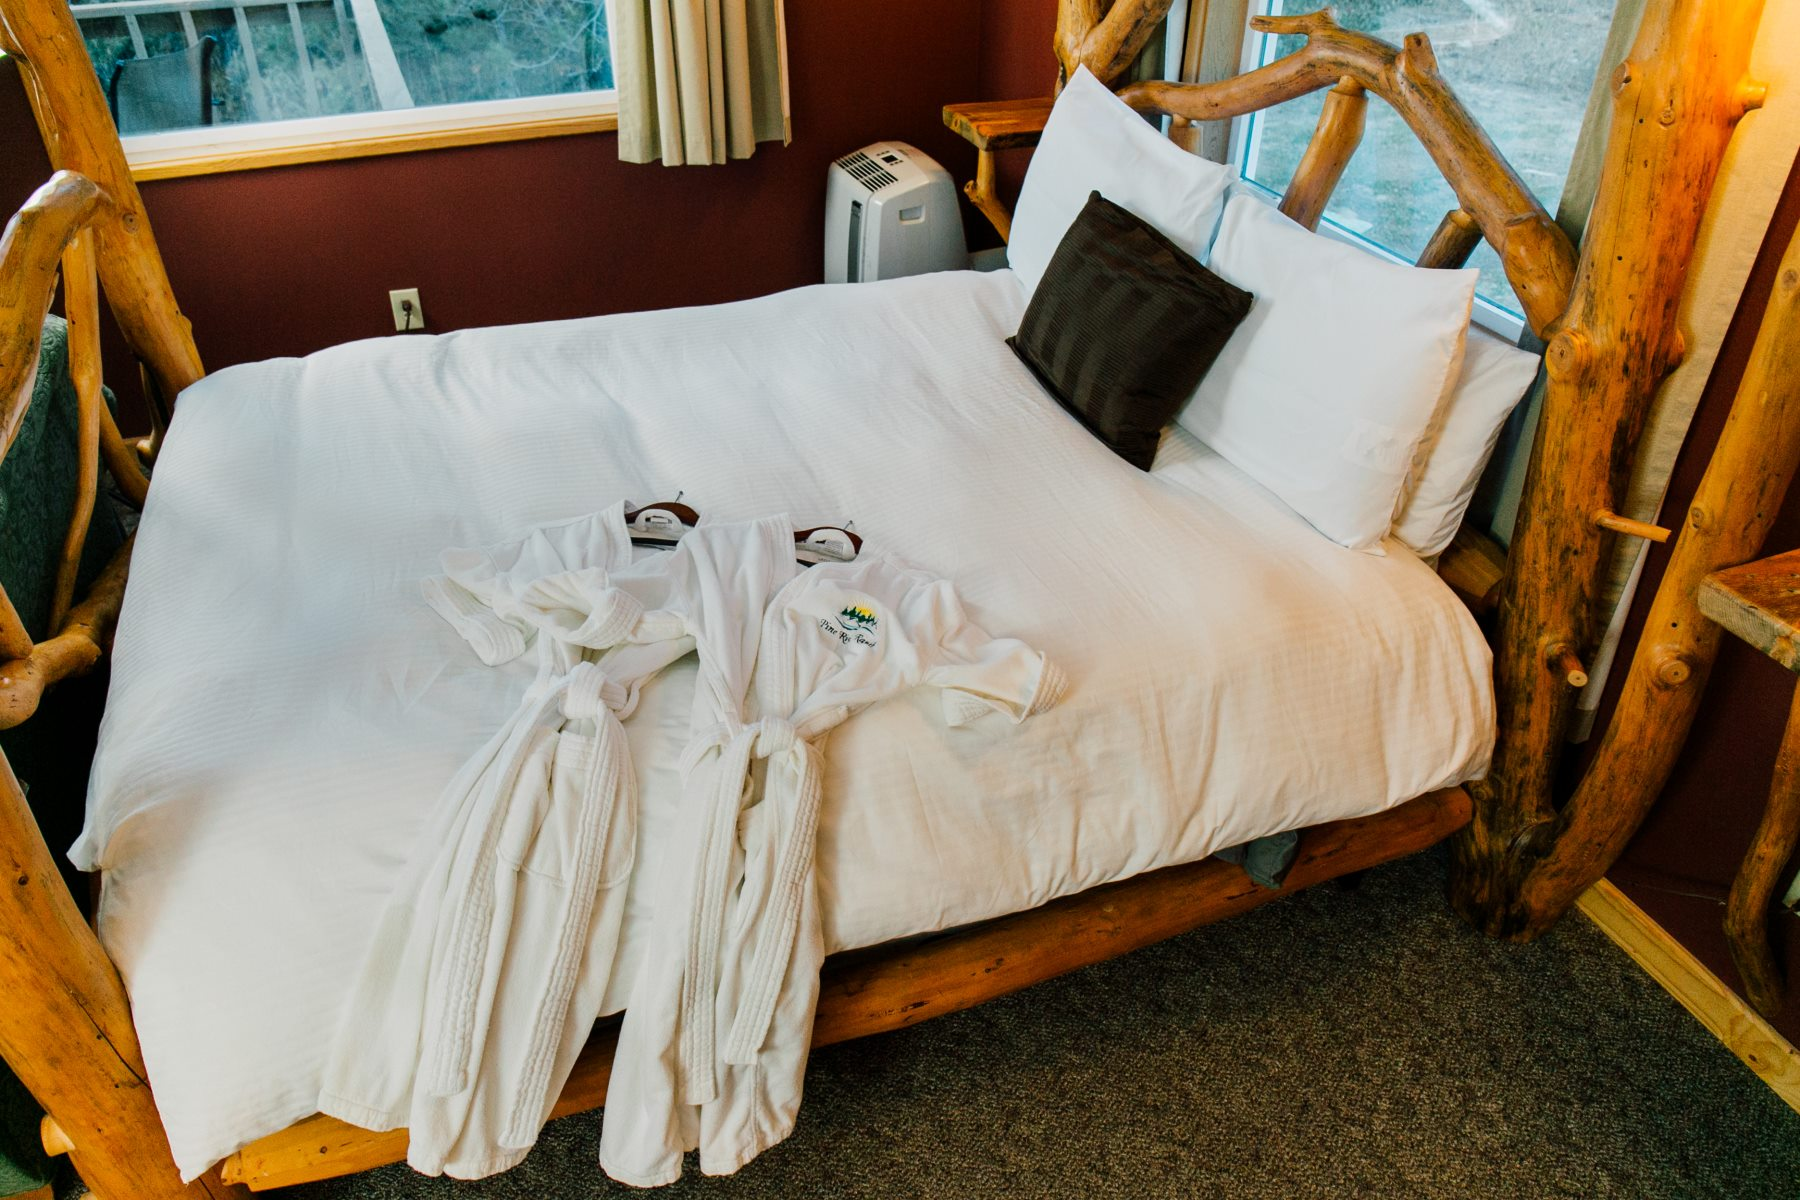 Bathrobes in Natapoc Suite at Pine River Ranch